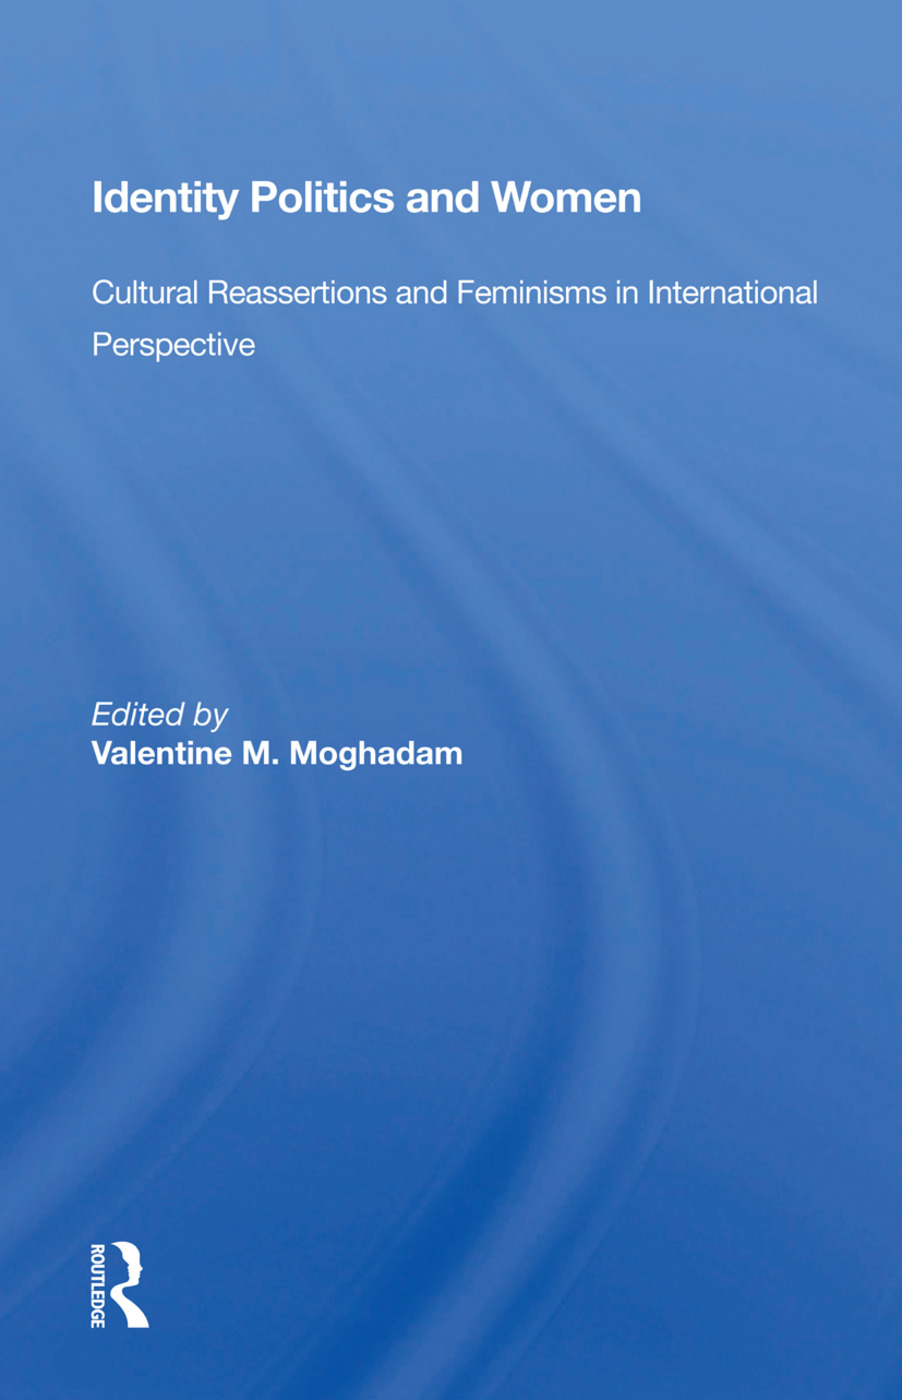 Identity Politics And Women: Cultural Reassertions And Feminisms In International Perspective book cover